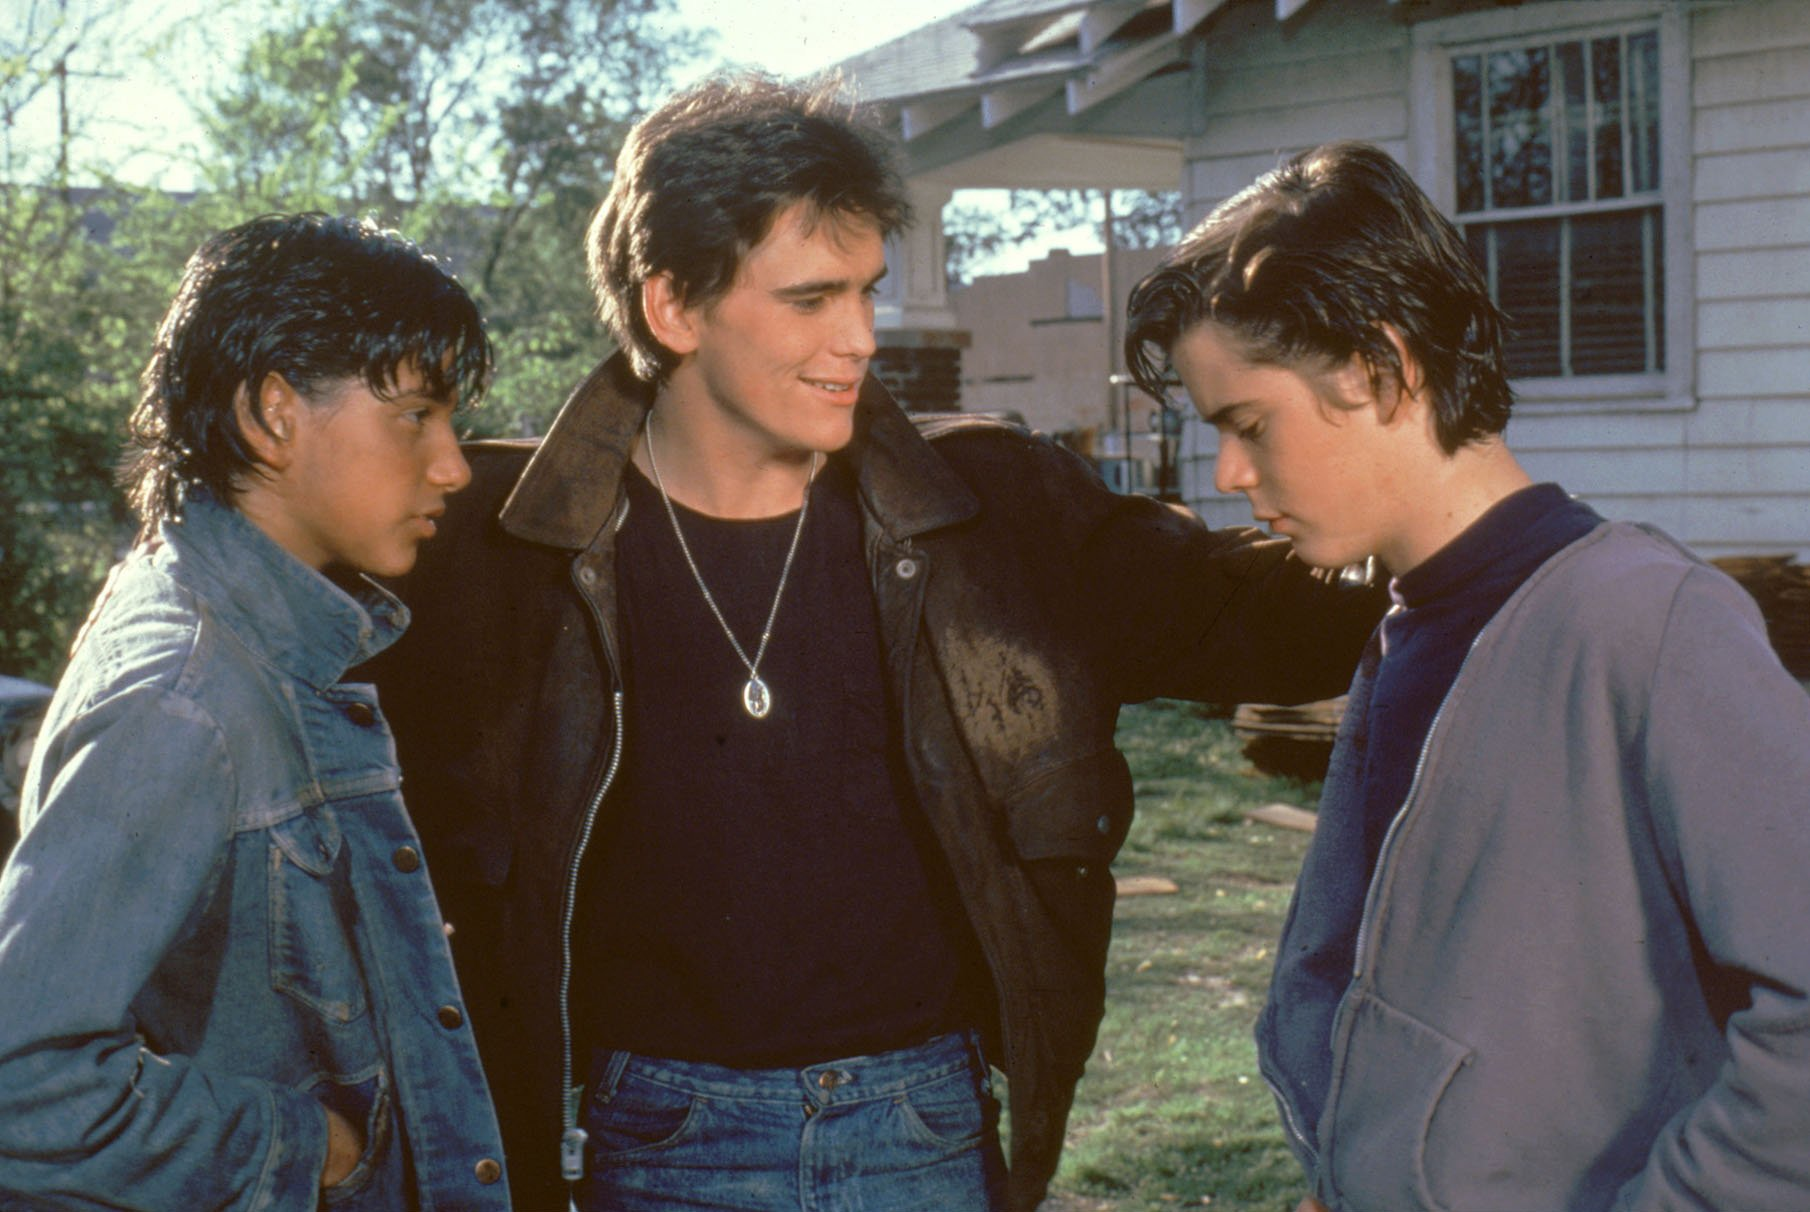 20 Things You Probably Didn't Know About The 1983 Film The Outsiders